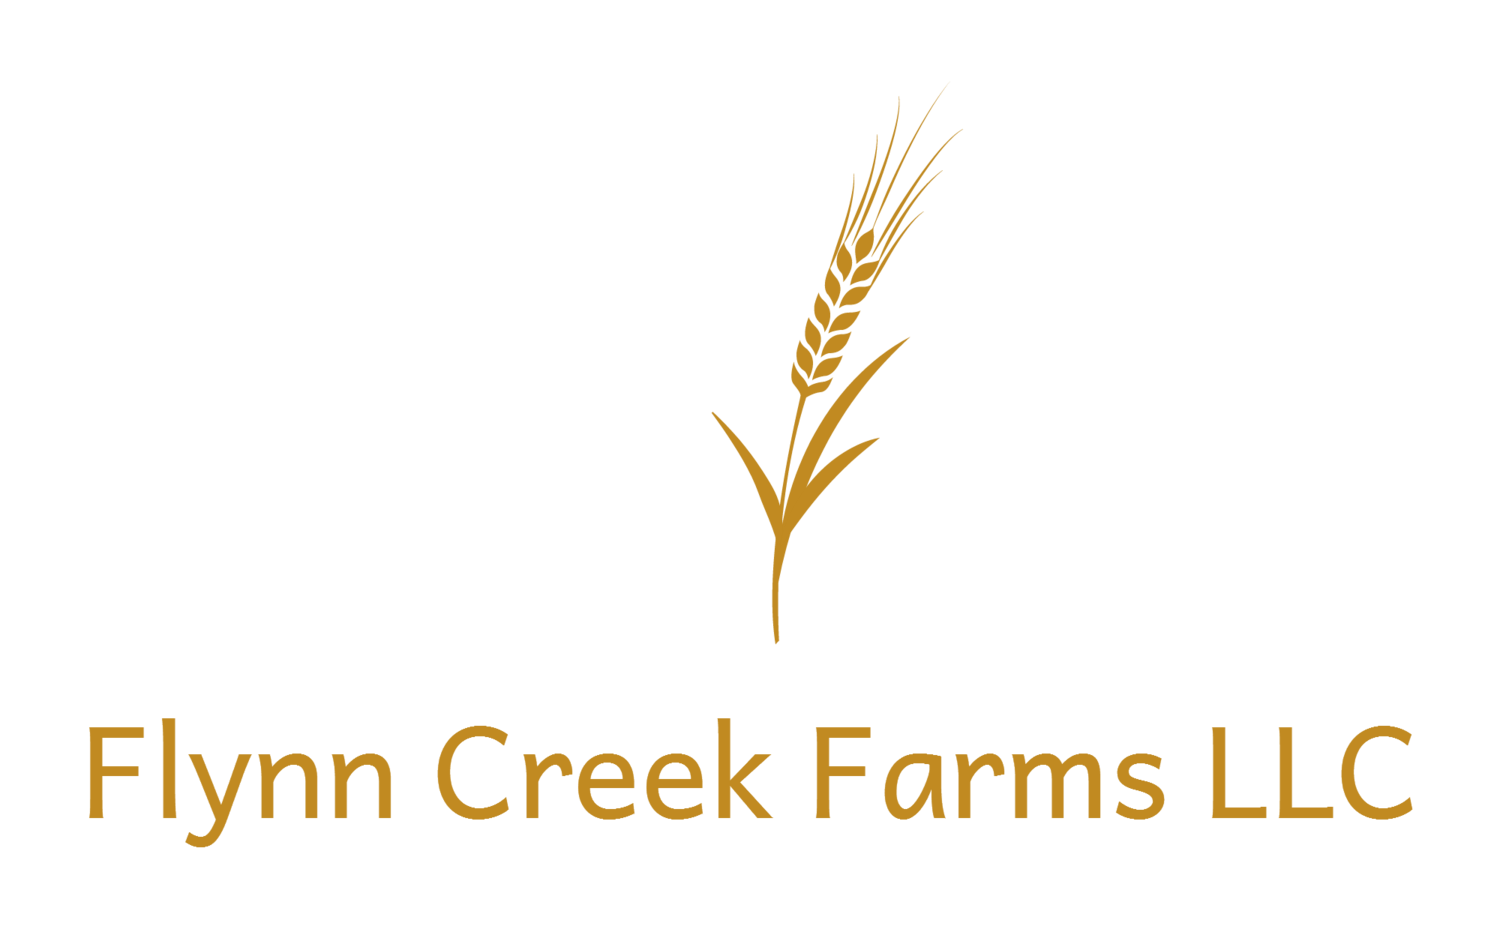 Flynn Creek Farms LLC